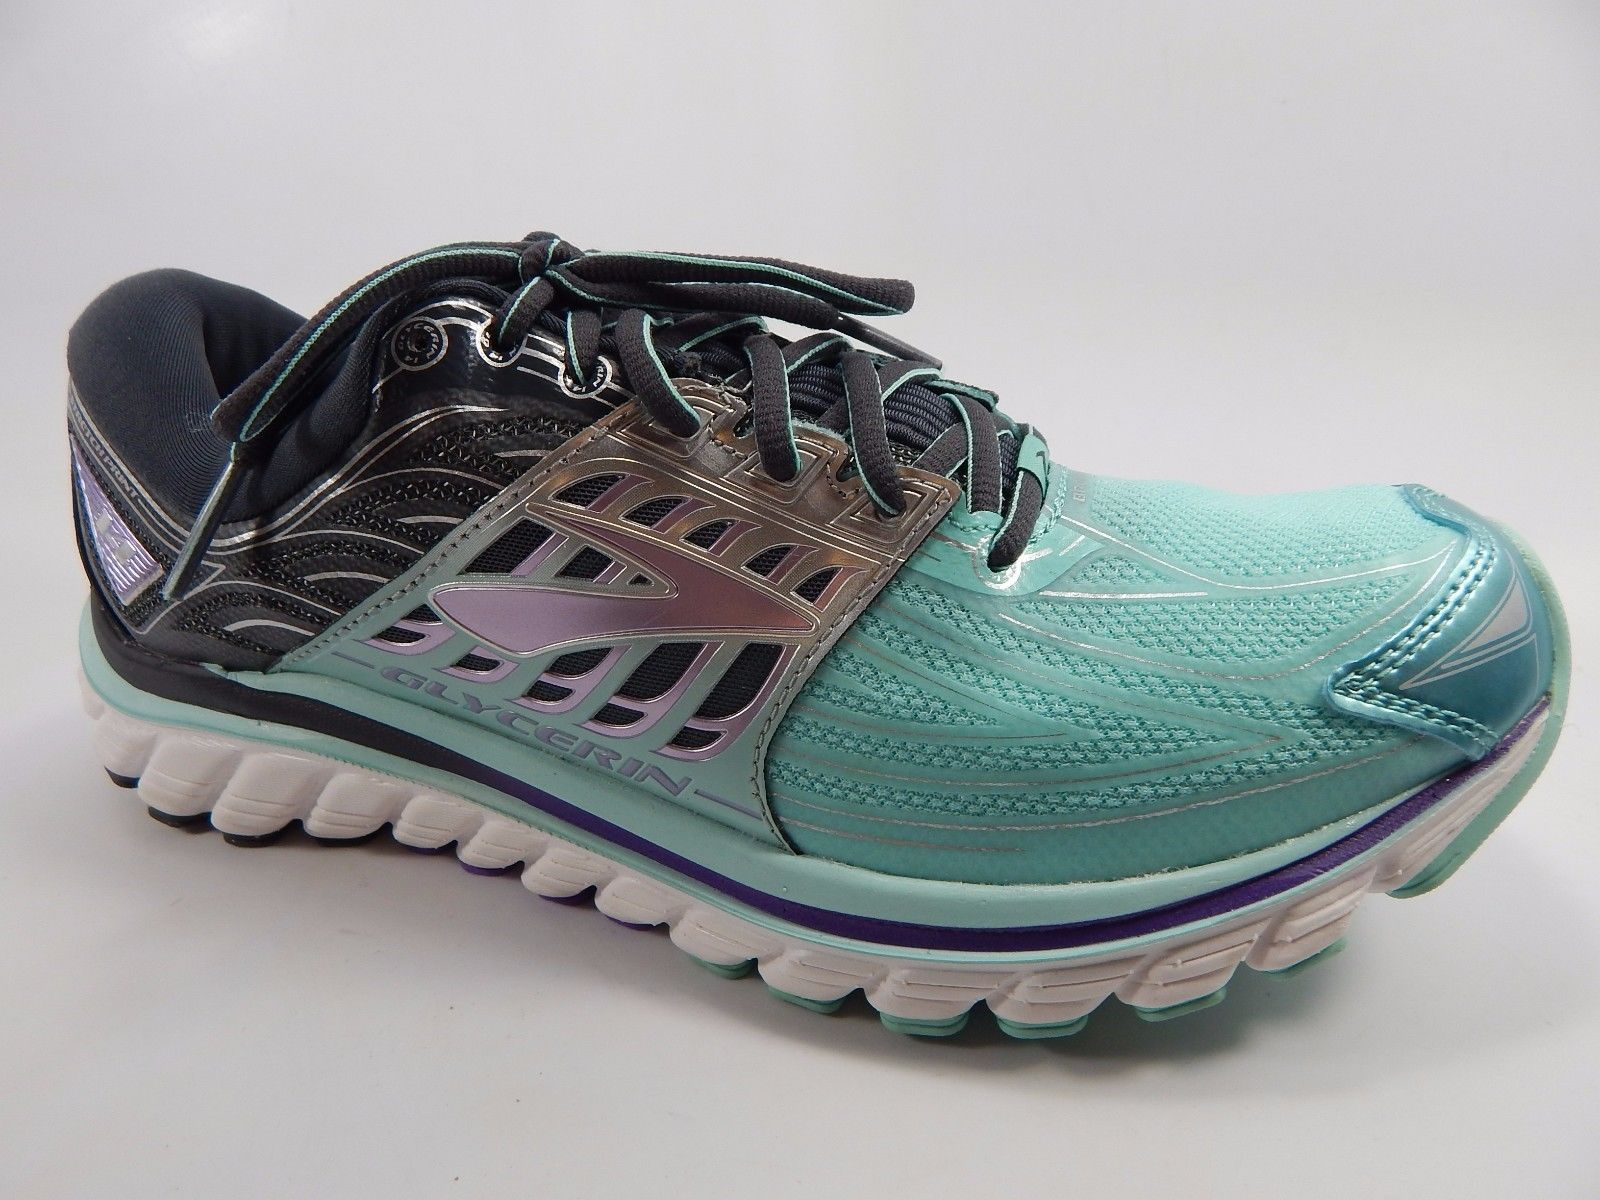 SINGLE RIGHT SHOE Brooks Glycerin 14 Women's Running Shoe Size US 11 M (B) EU 43